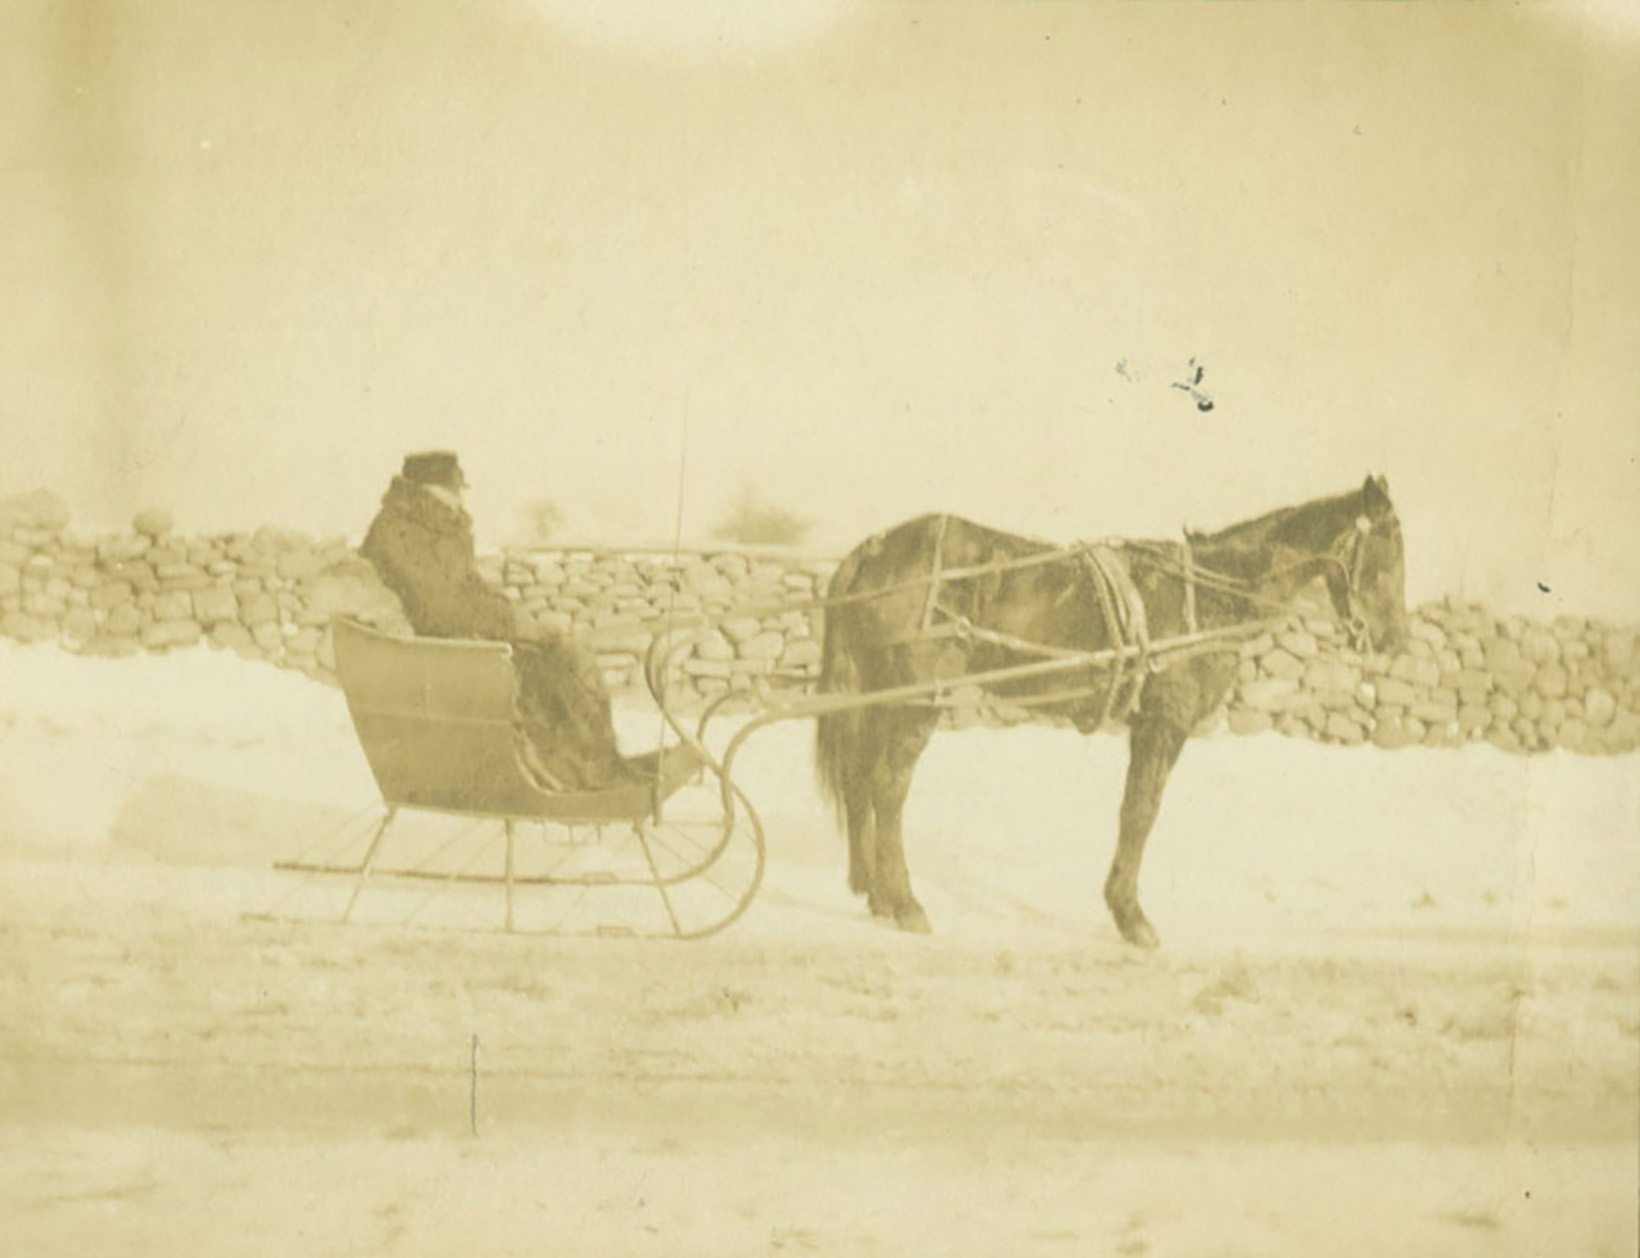 Photographs: Sleighing in Lyme